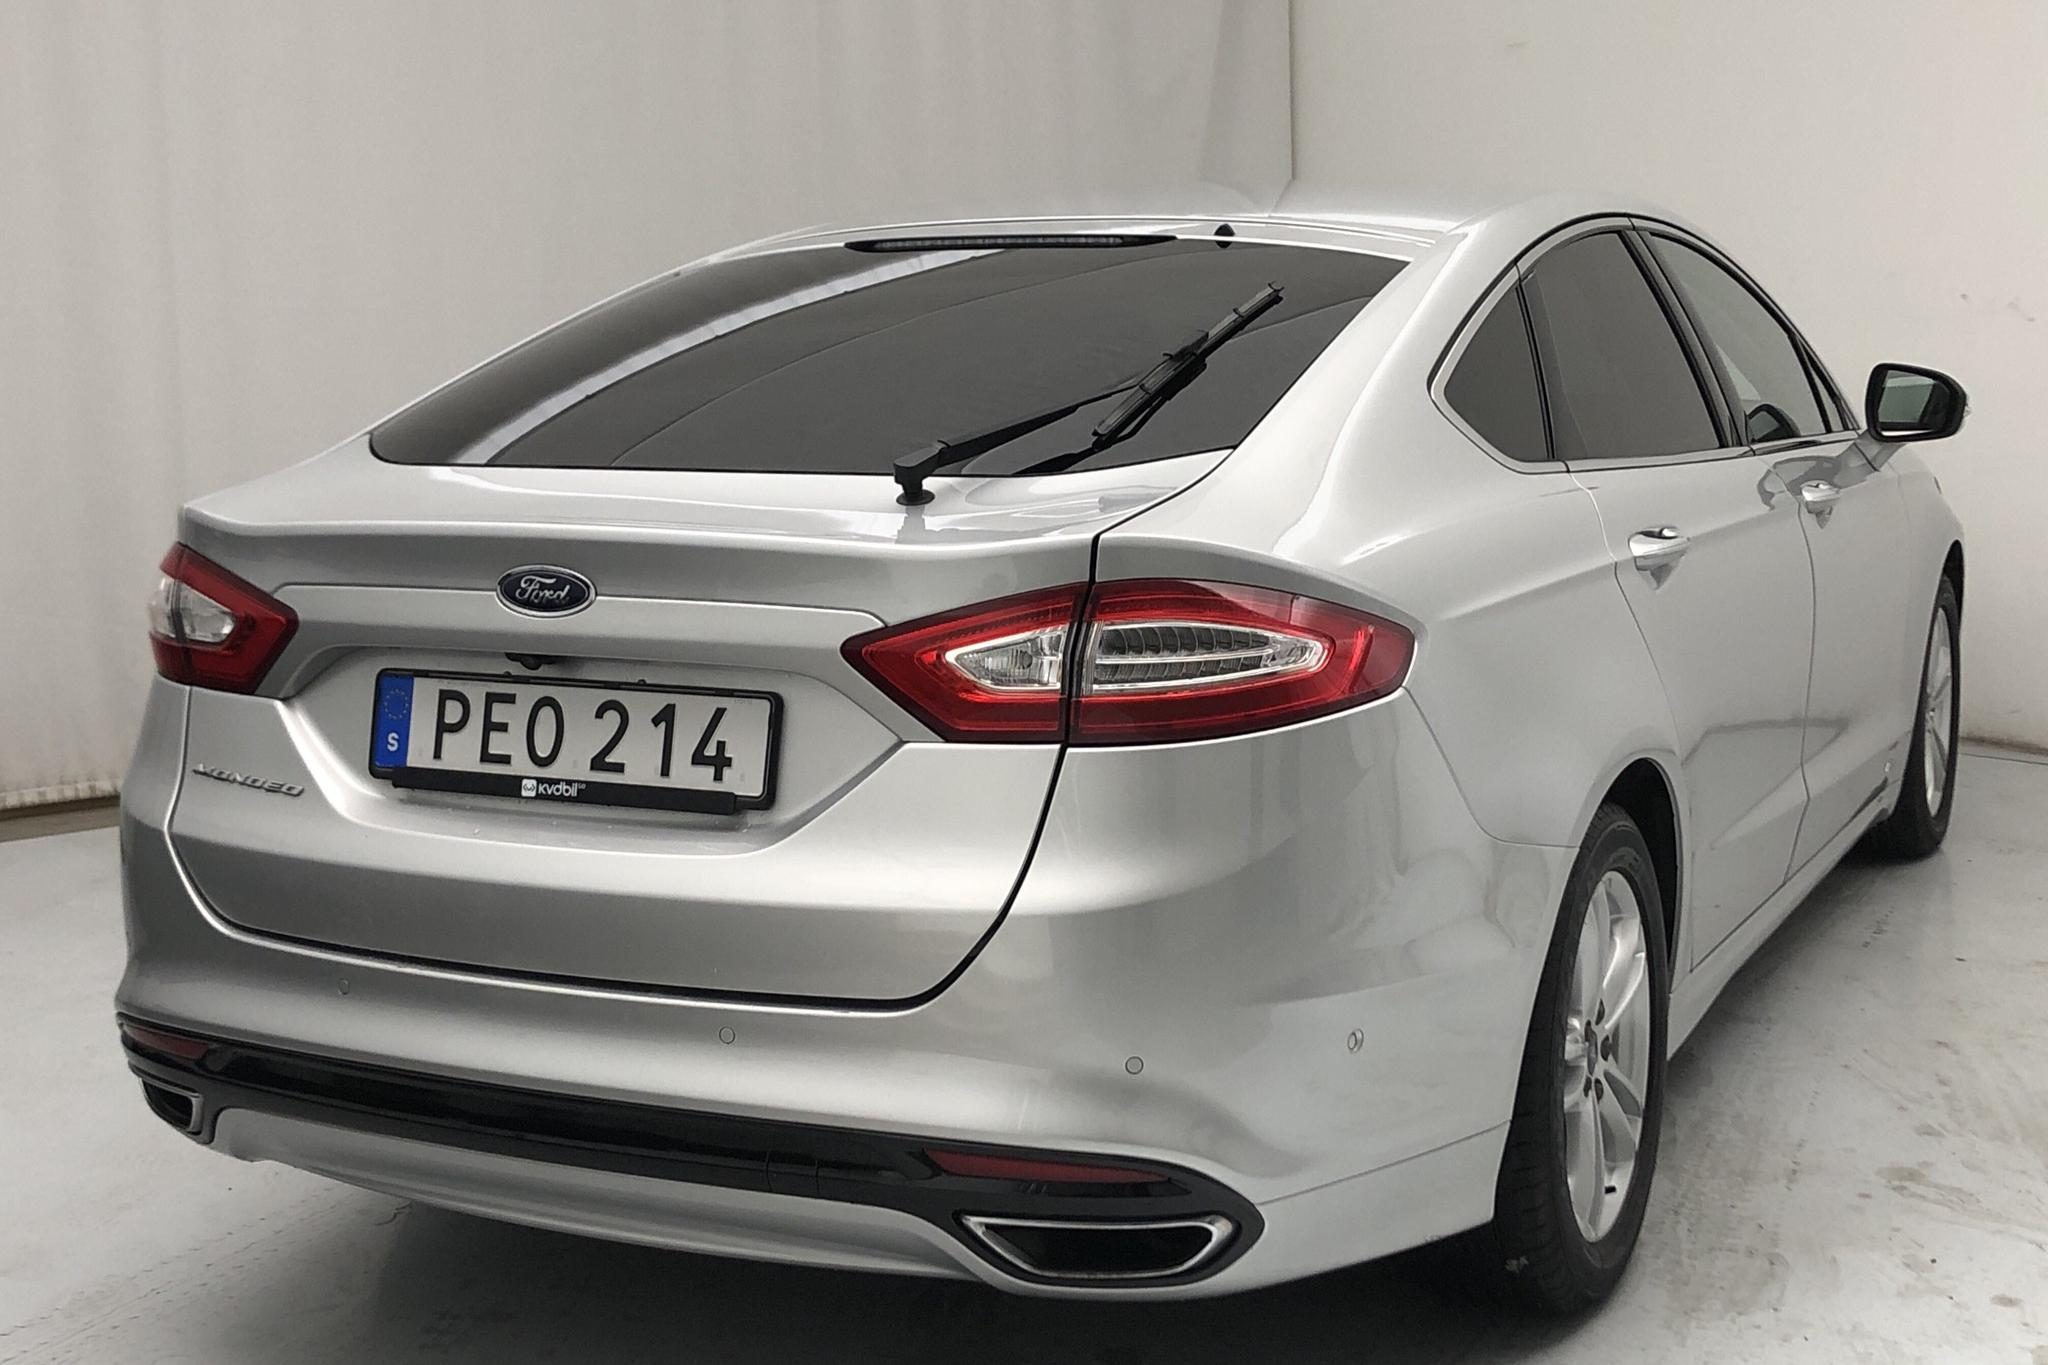 Ford Mondeo 2.0 TDCi AWD 5dr (180hk) - 64 750 km - Automatic - gray - 2017